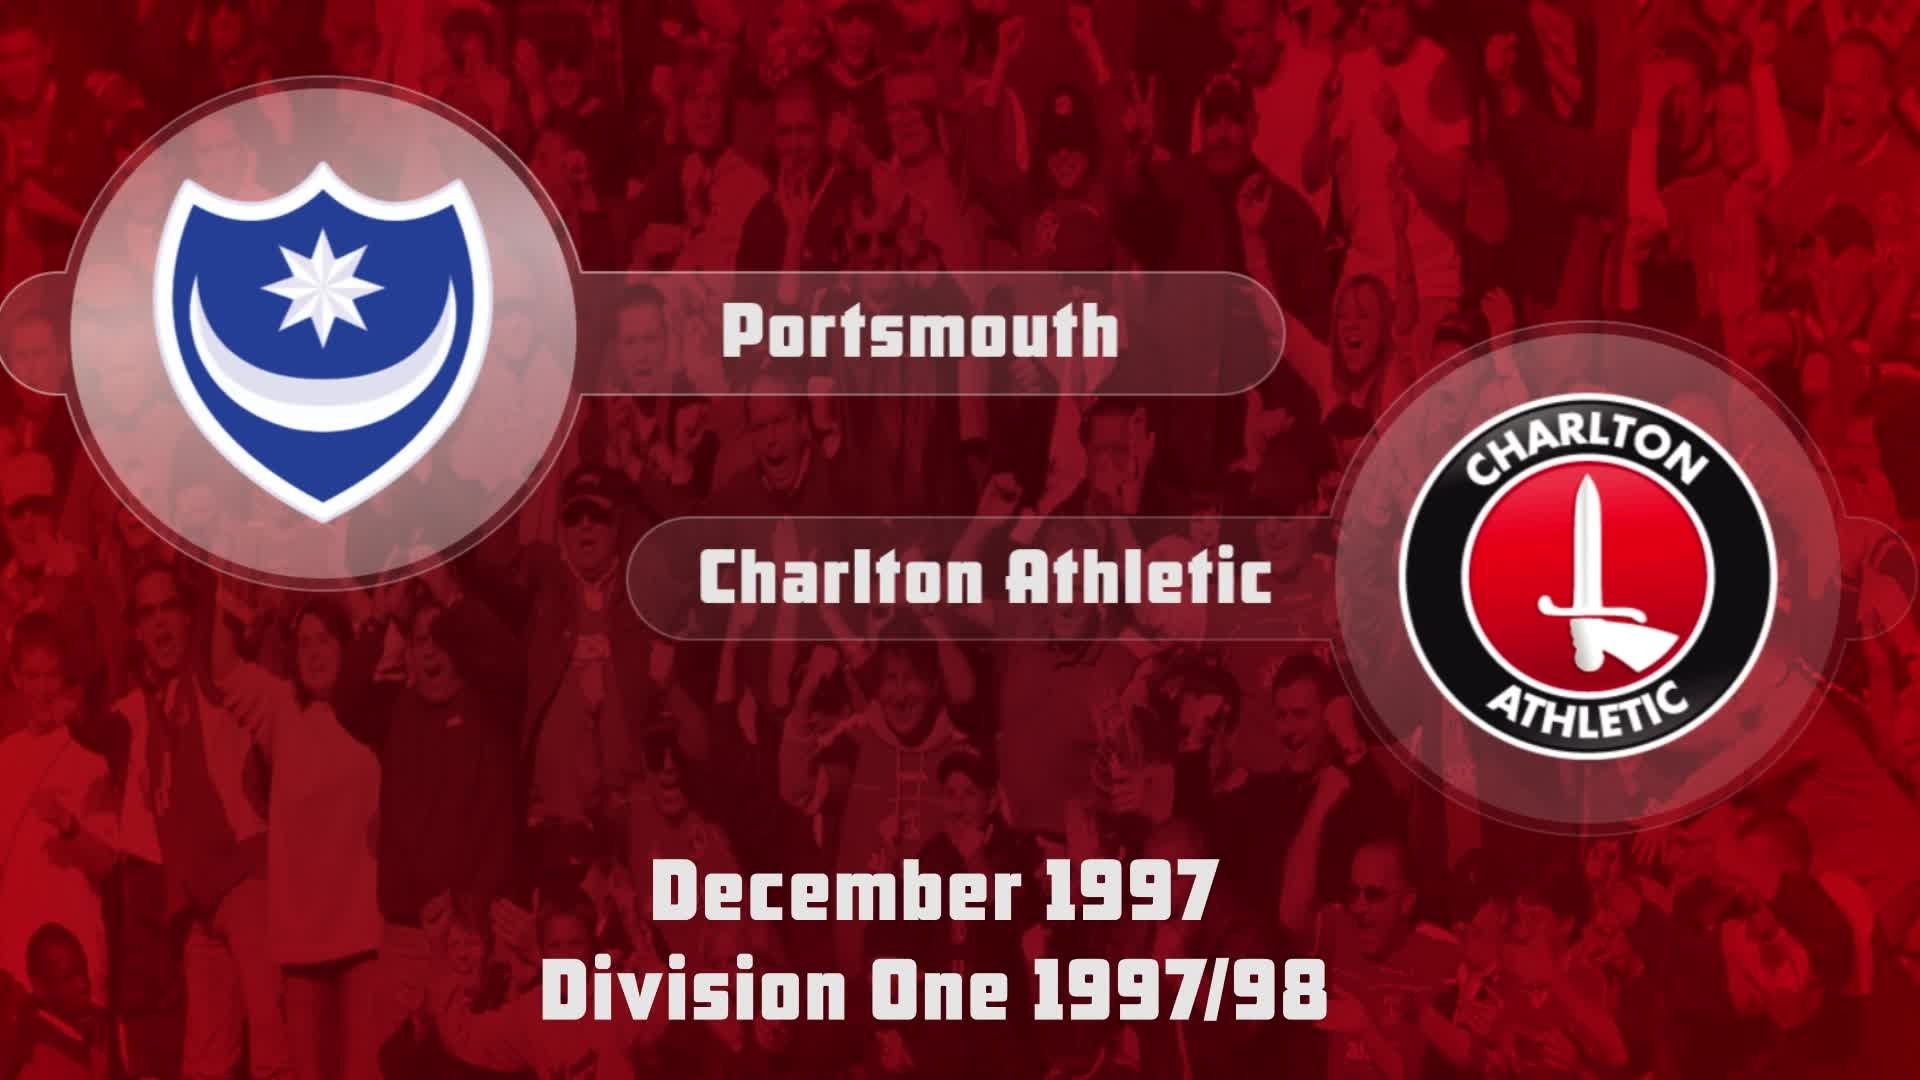 25 HIGHLIGHTS | Portsmouth 0 Charlton 2 (Dec 1997)